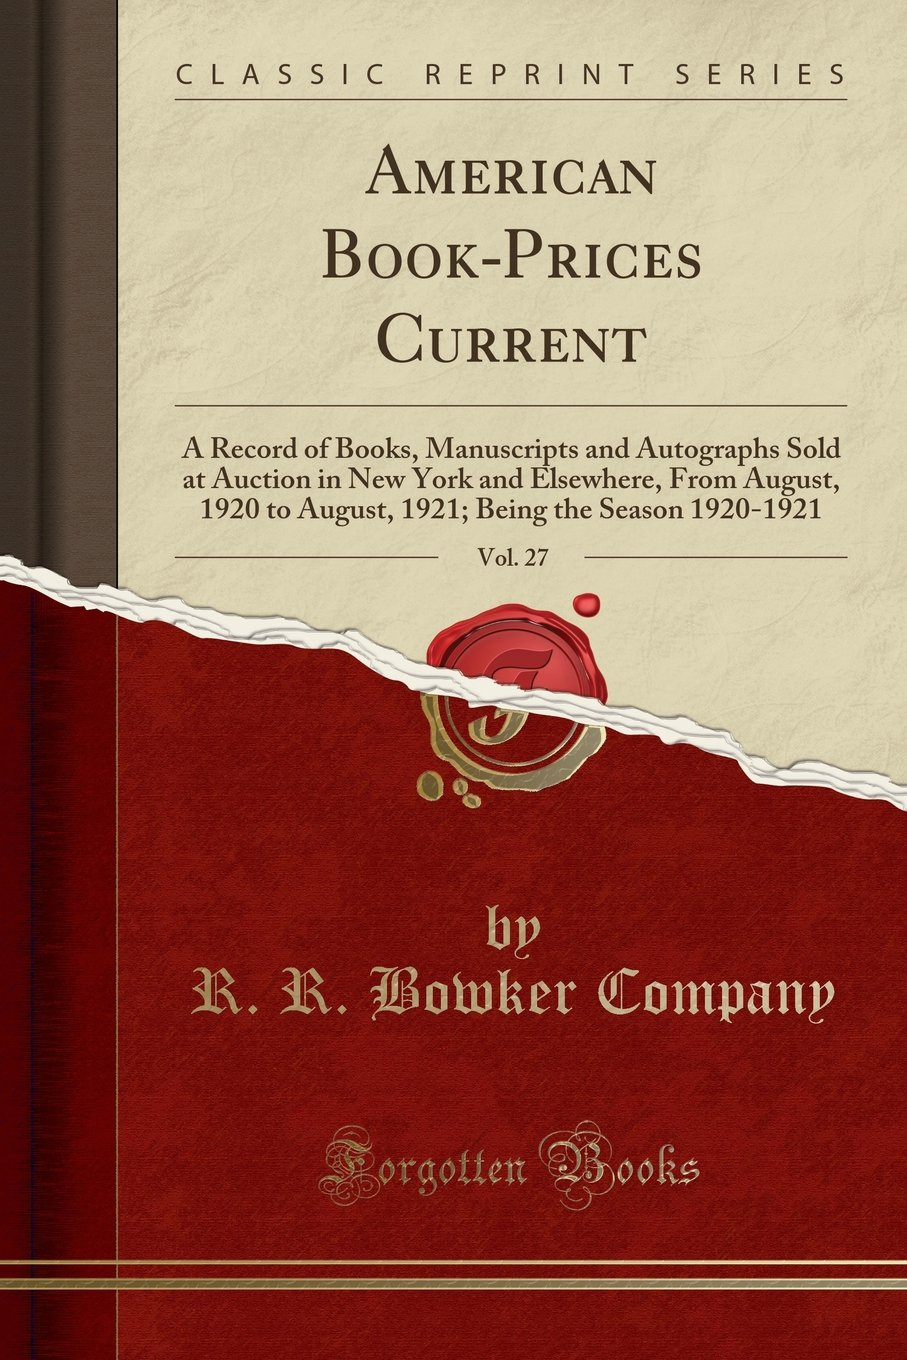 Download American Book-Prices Current, Vol. 27: A Record of Books, Manuscripts and Autographs Sold at Auction in New York and Elsewhere, From August, 1920 to ... Being the Season 1920-1921 (Classic Reprint) PDF